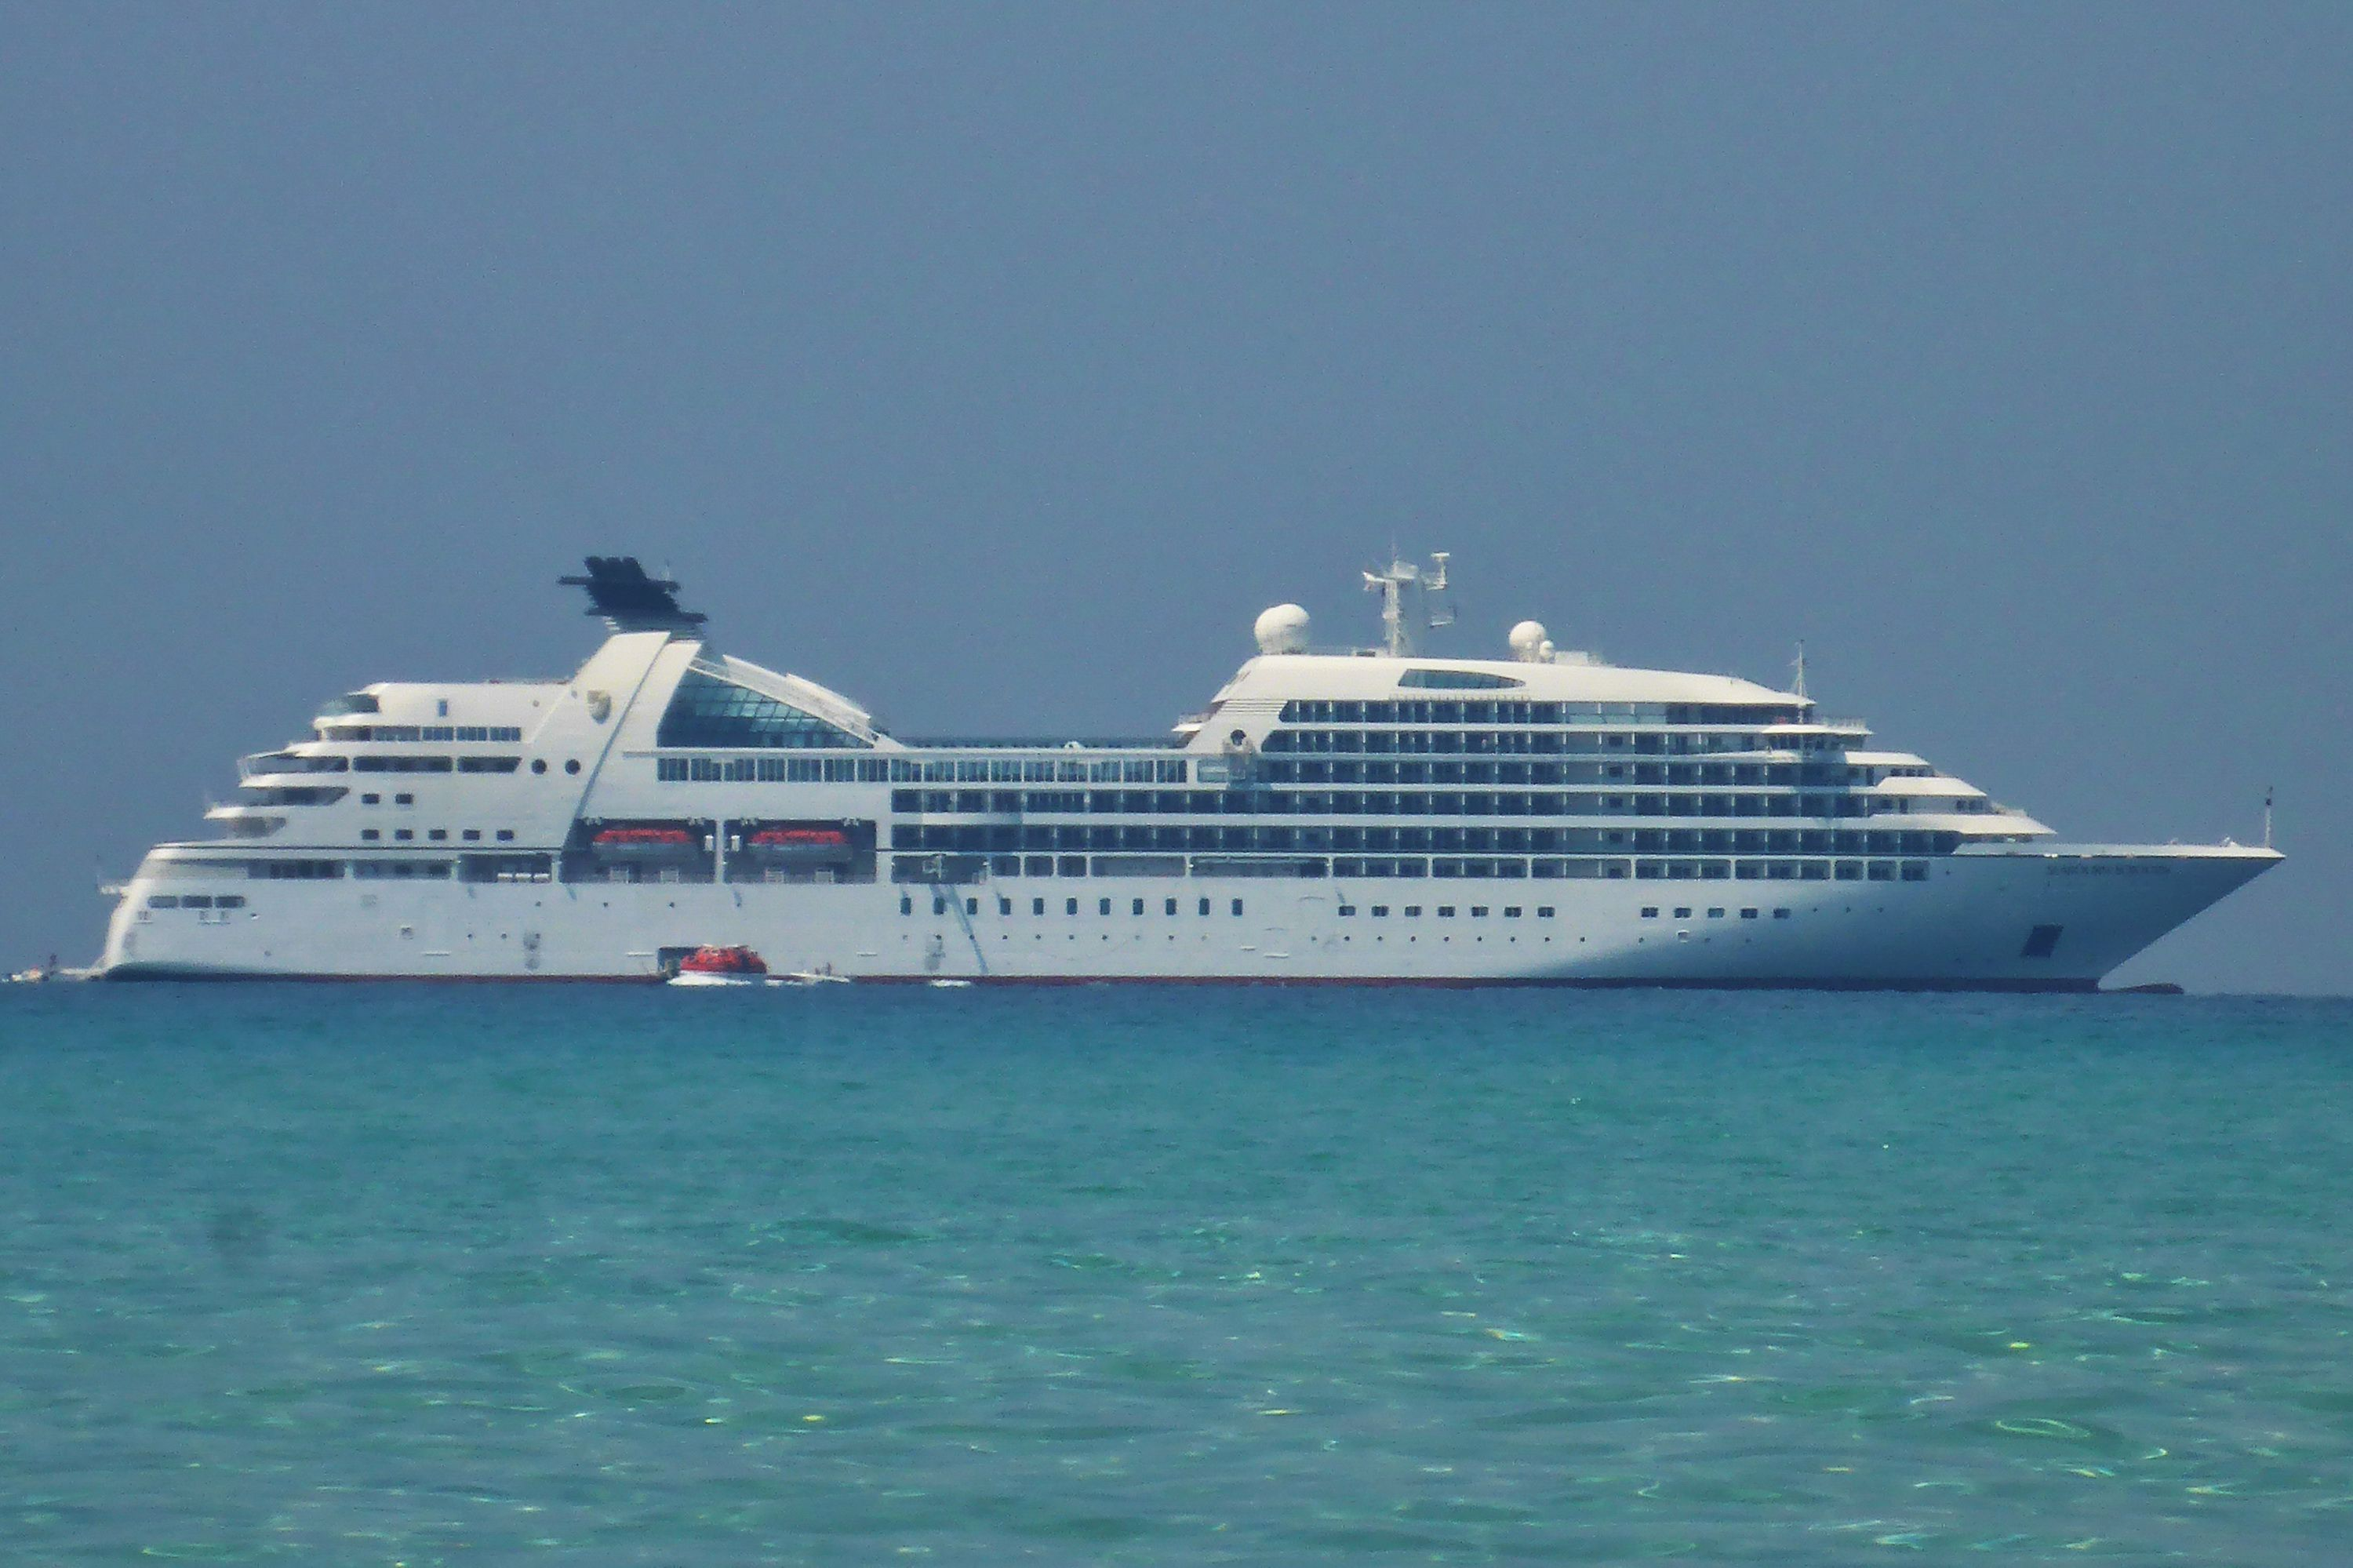 Seabourn Sojourn Cruise Ship Profile And Photo Tour